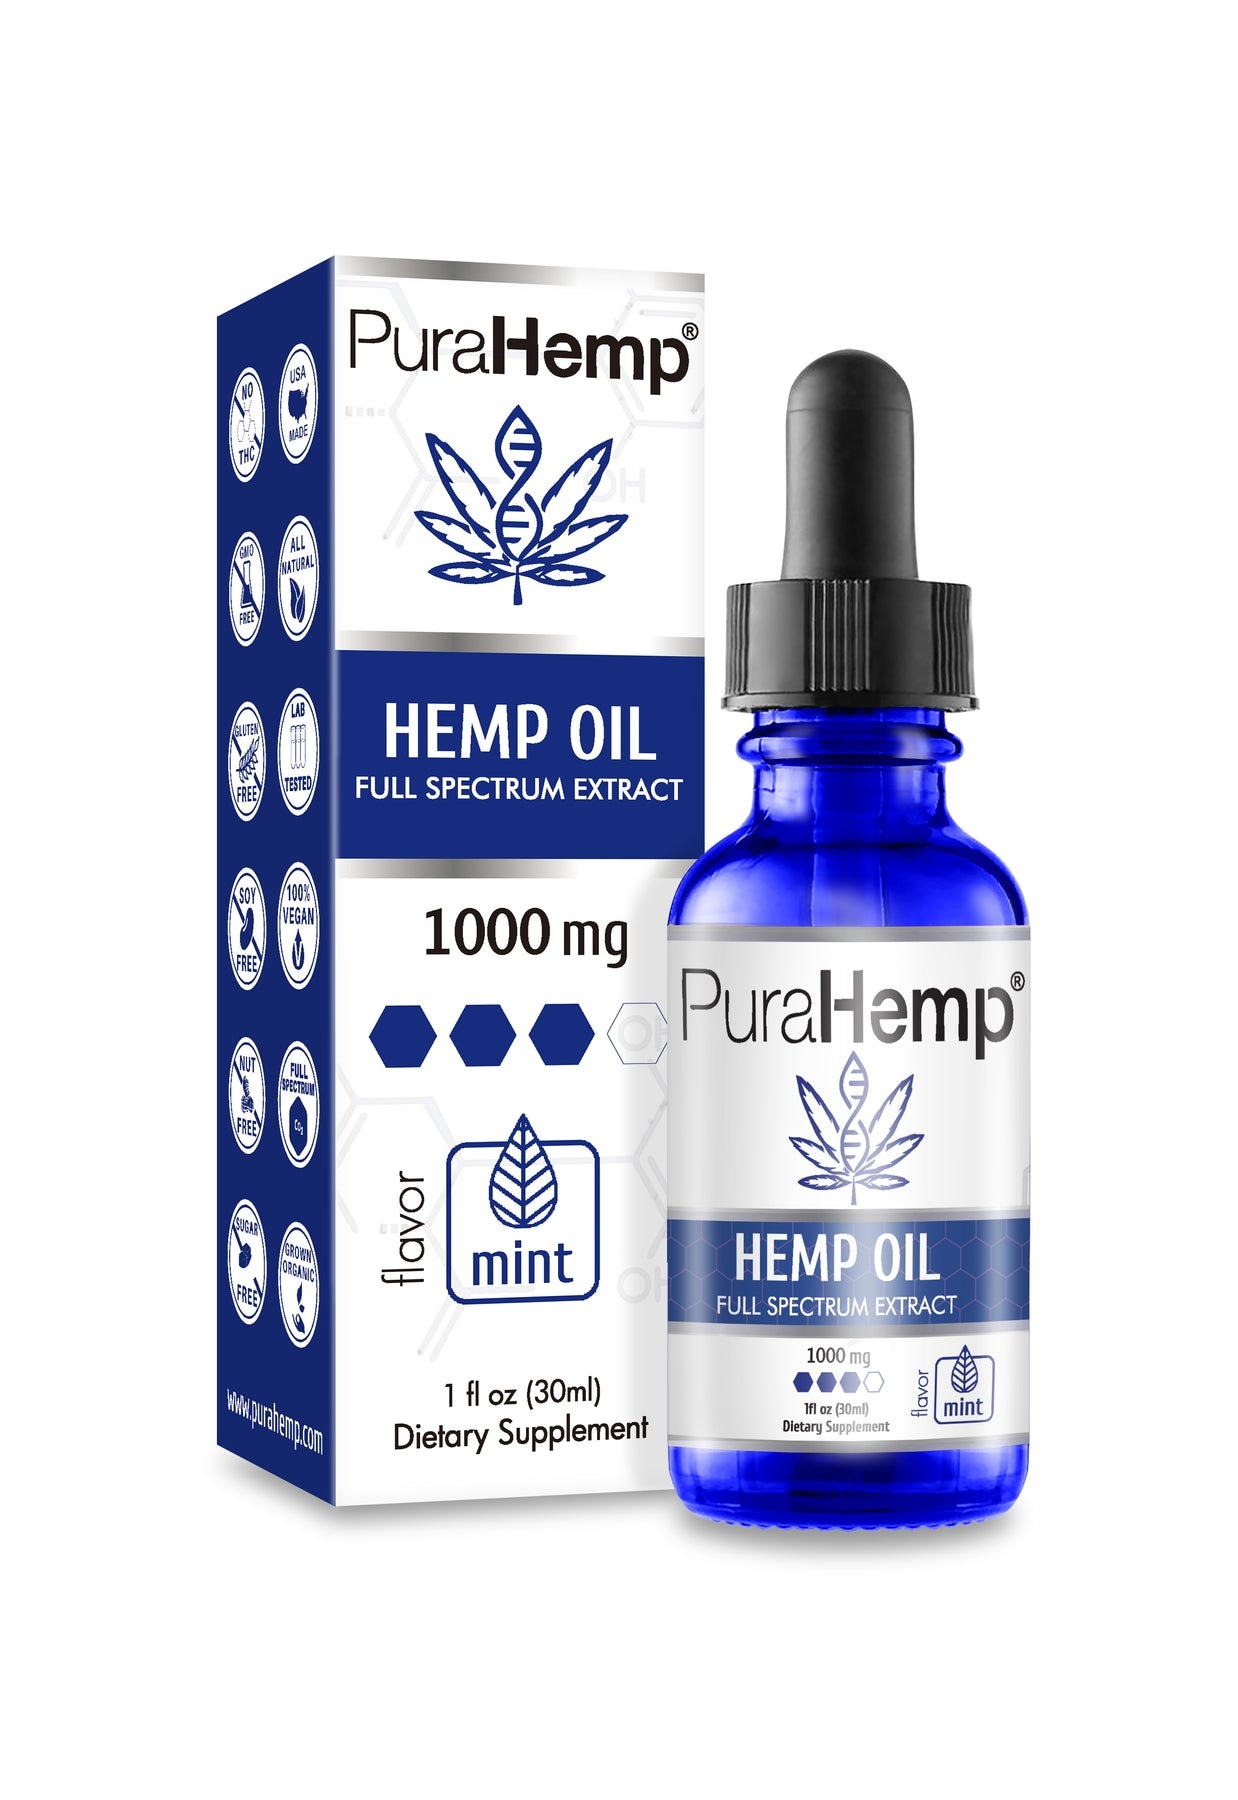 pura hemp cbd oil Promo